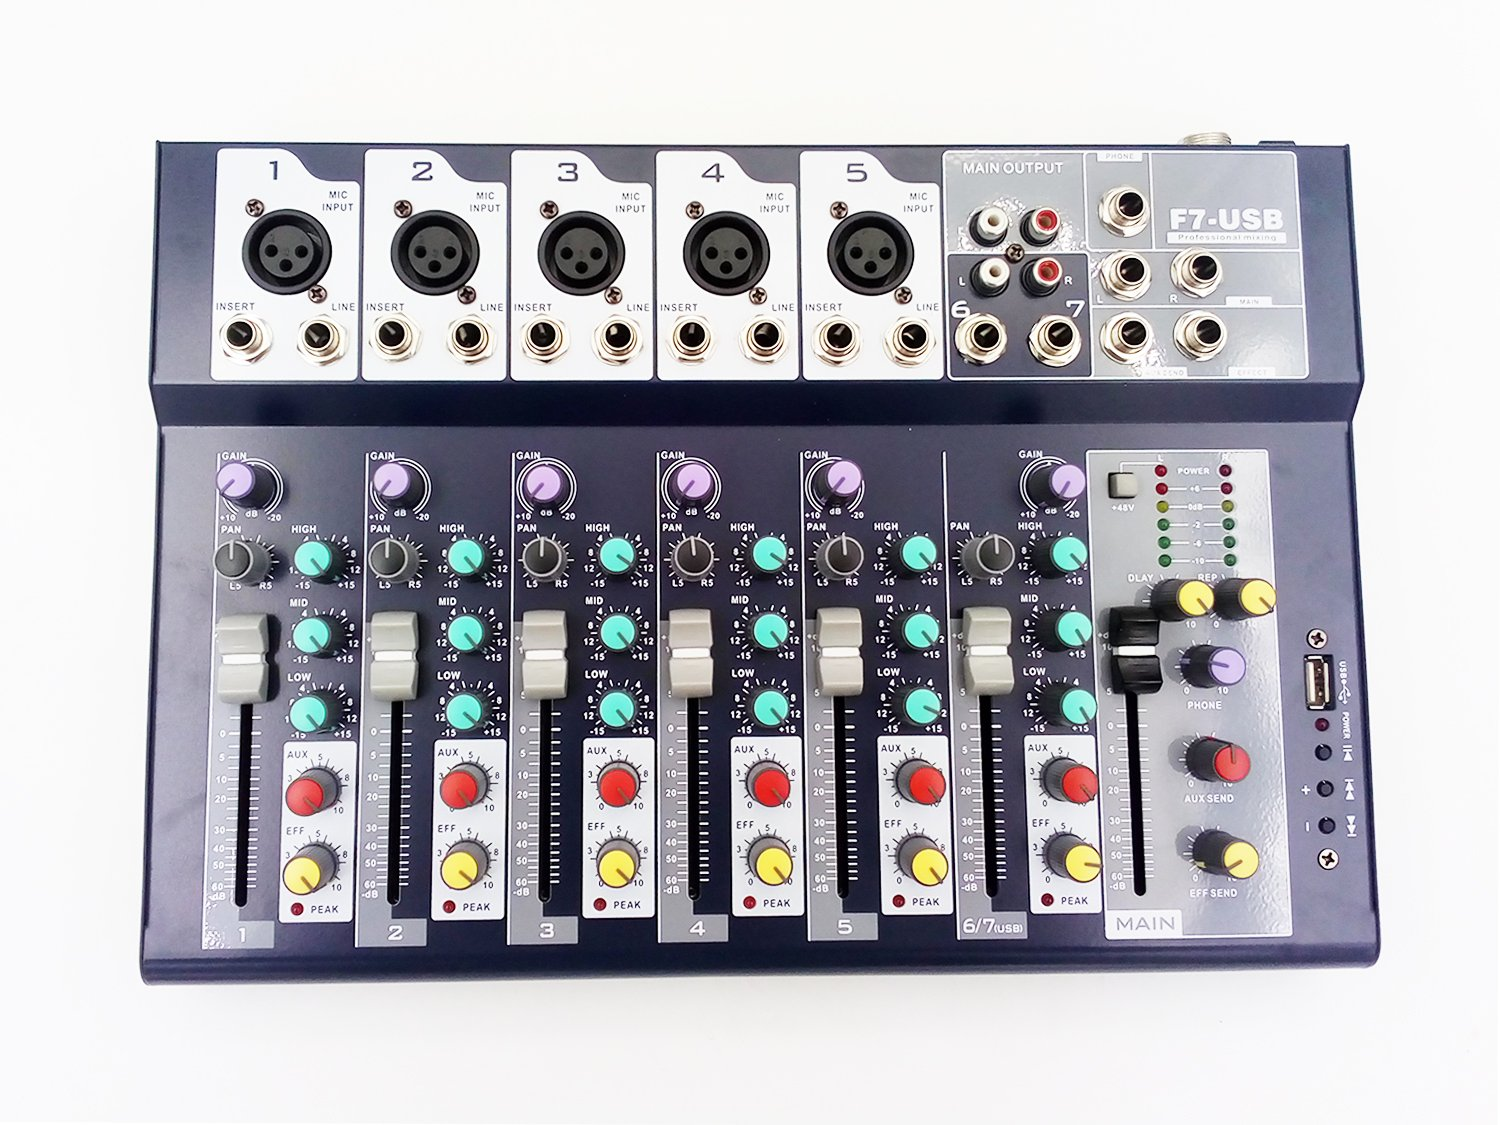 Weymic Professional Mixer | 4-Channel 2-Bus Mixer with USB Input 48V Phantom Power for Recording DJ Stage Karaoke Music Application F4